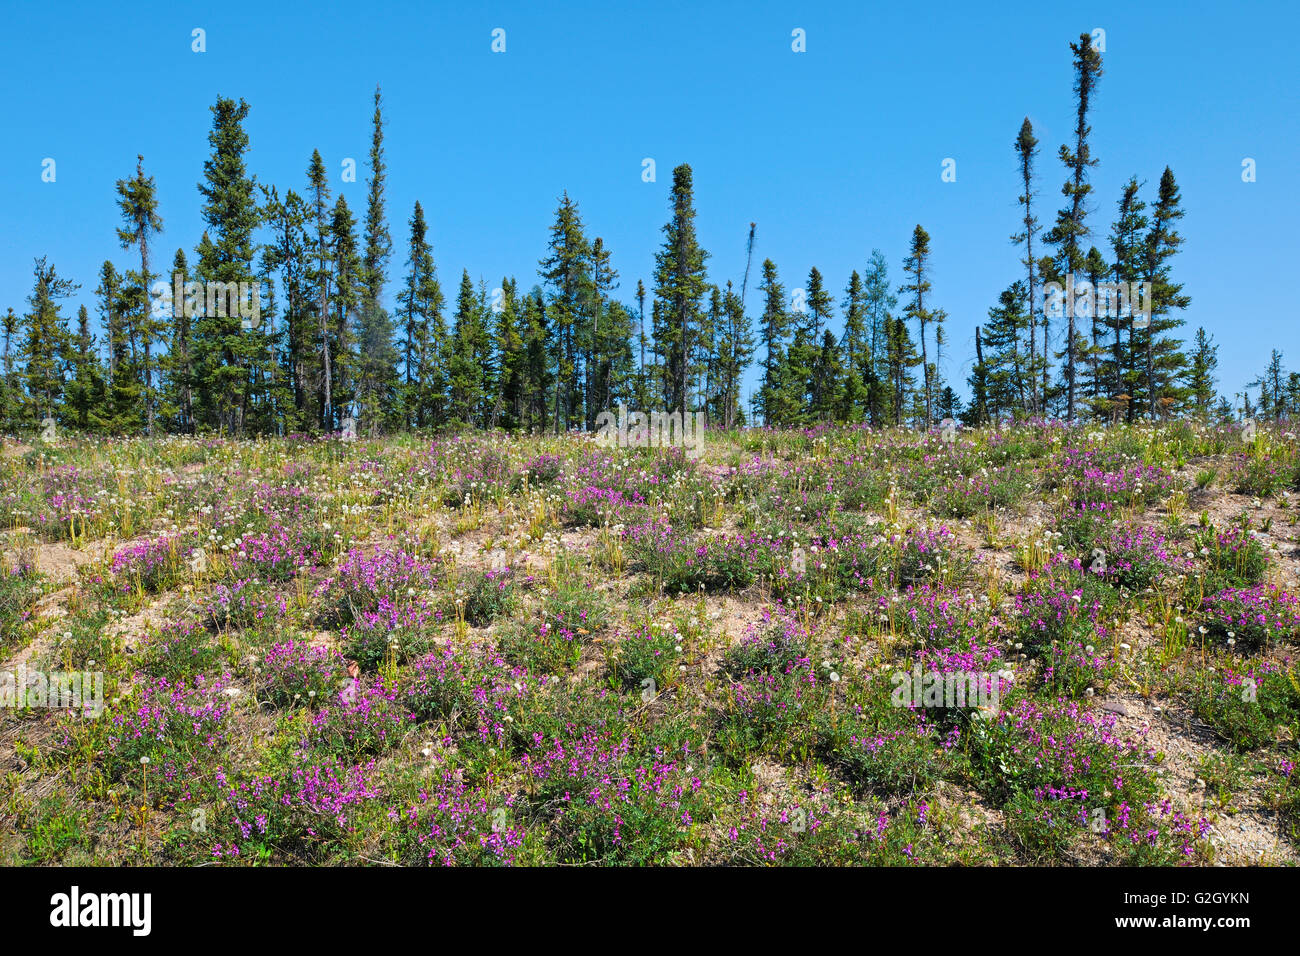 Wild Sweet Pea and black spruce trees in boreal forest  Yellowknife Highway near Fort Providence Northwest Territories - Stock Image